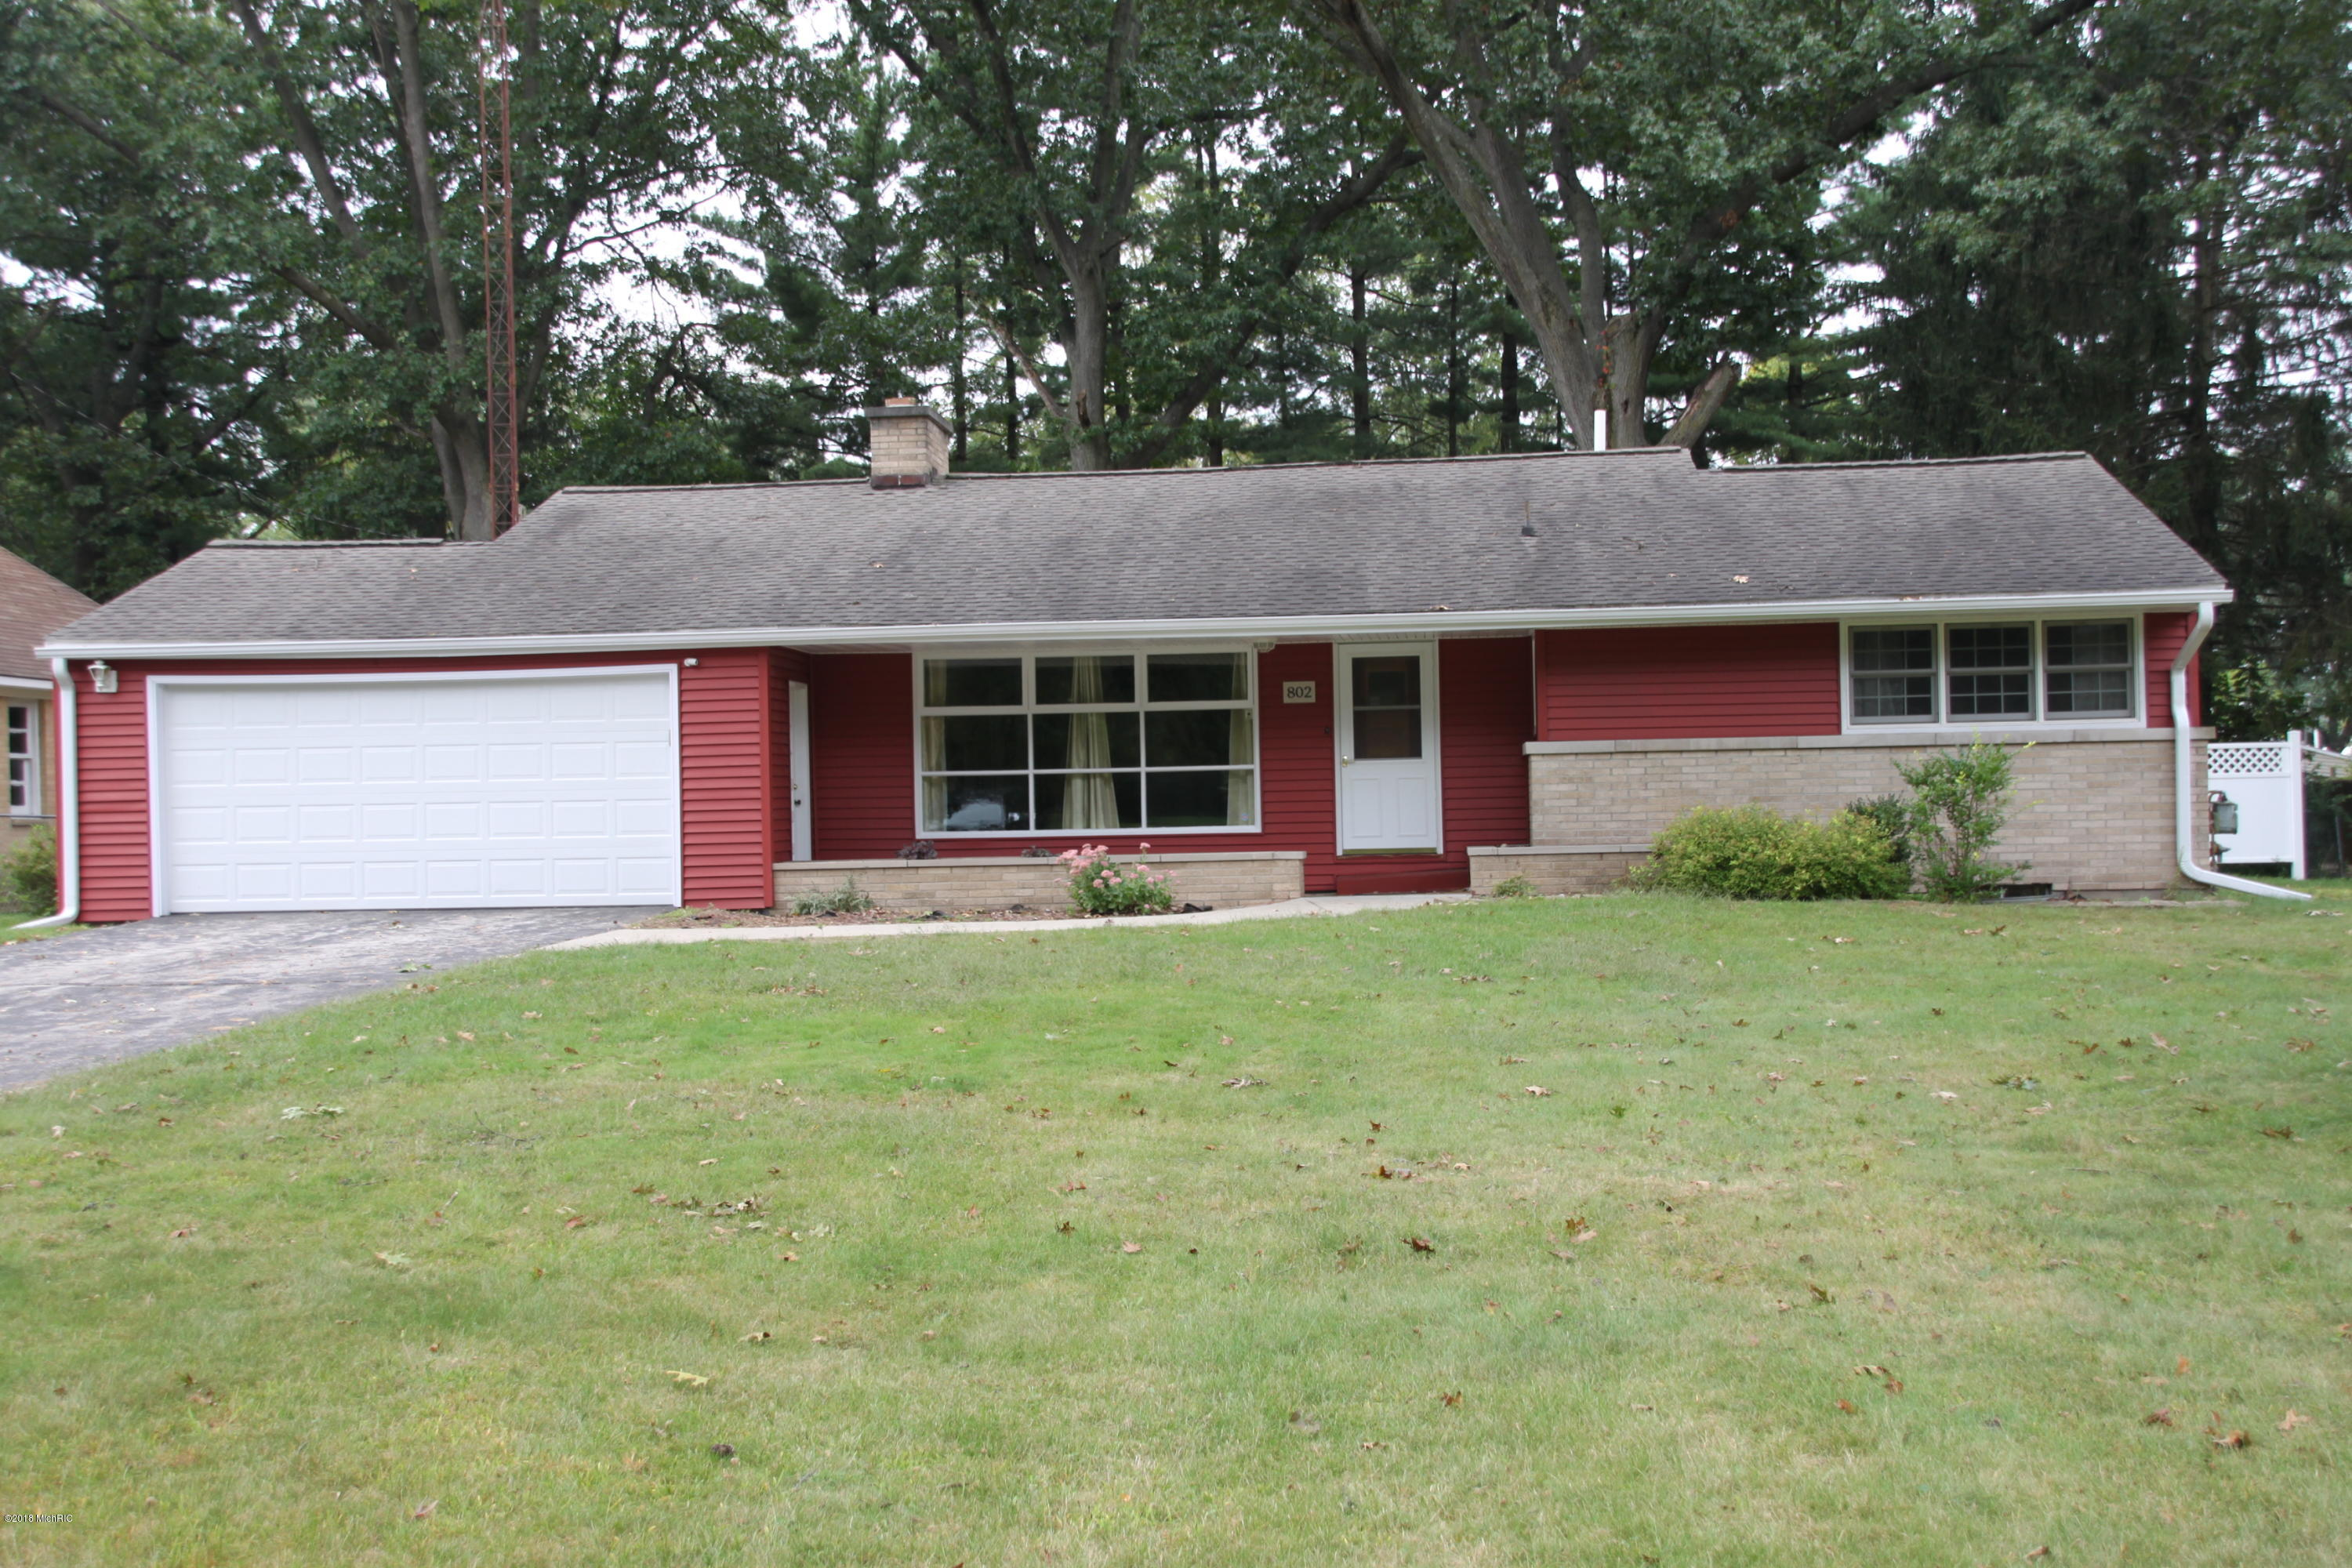 Photo for 802 S La Grave Street, Paw Paw, MI 49079 (MLS # 18046858)